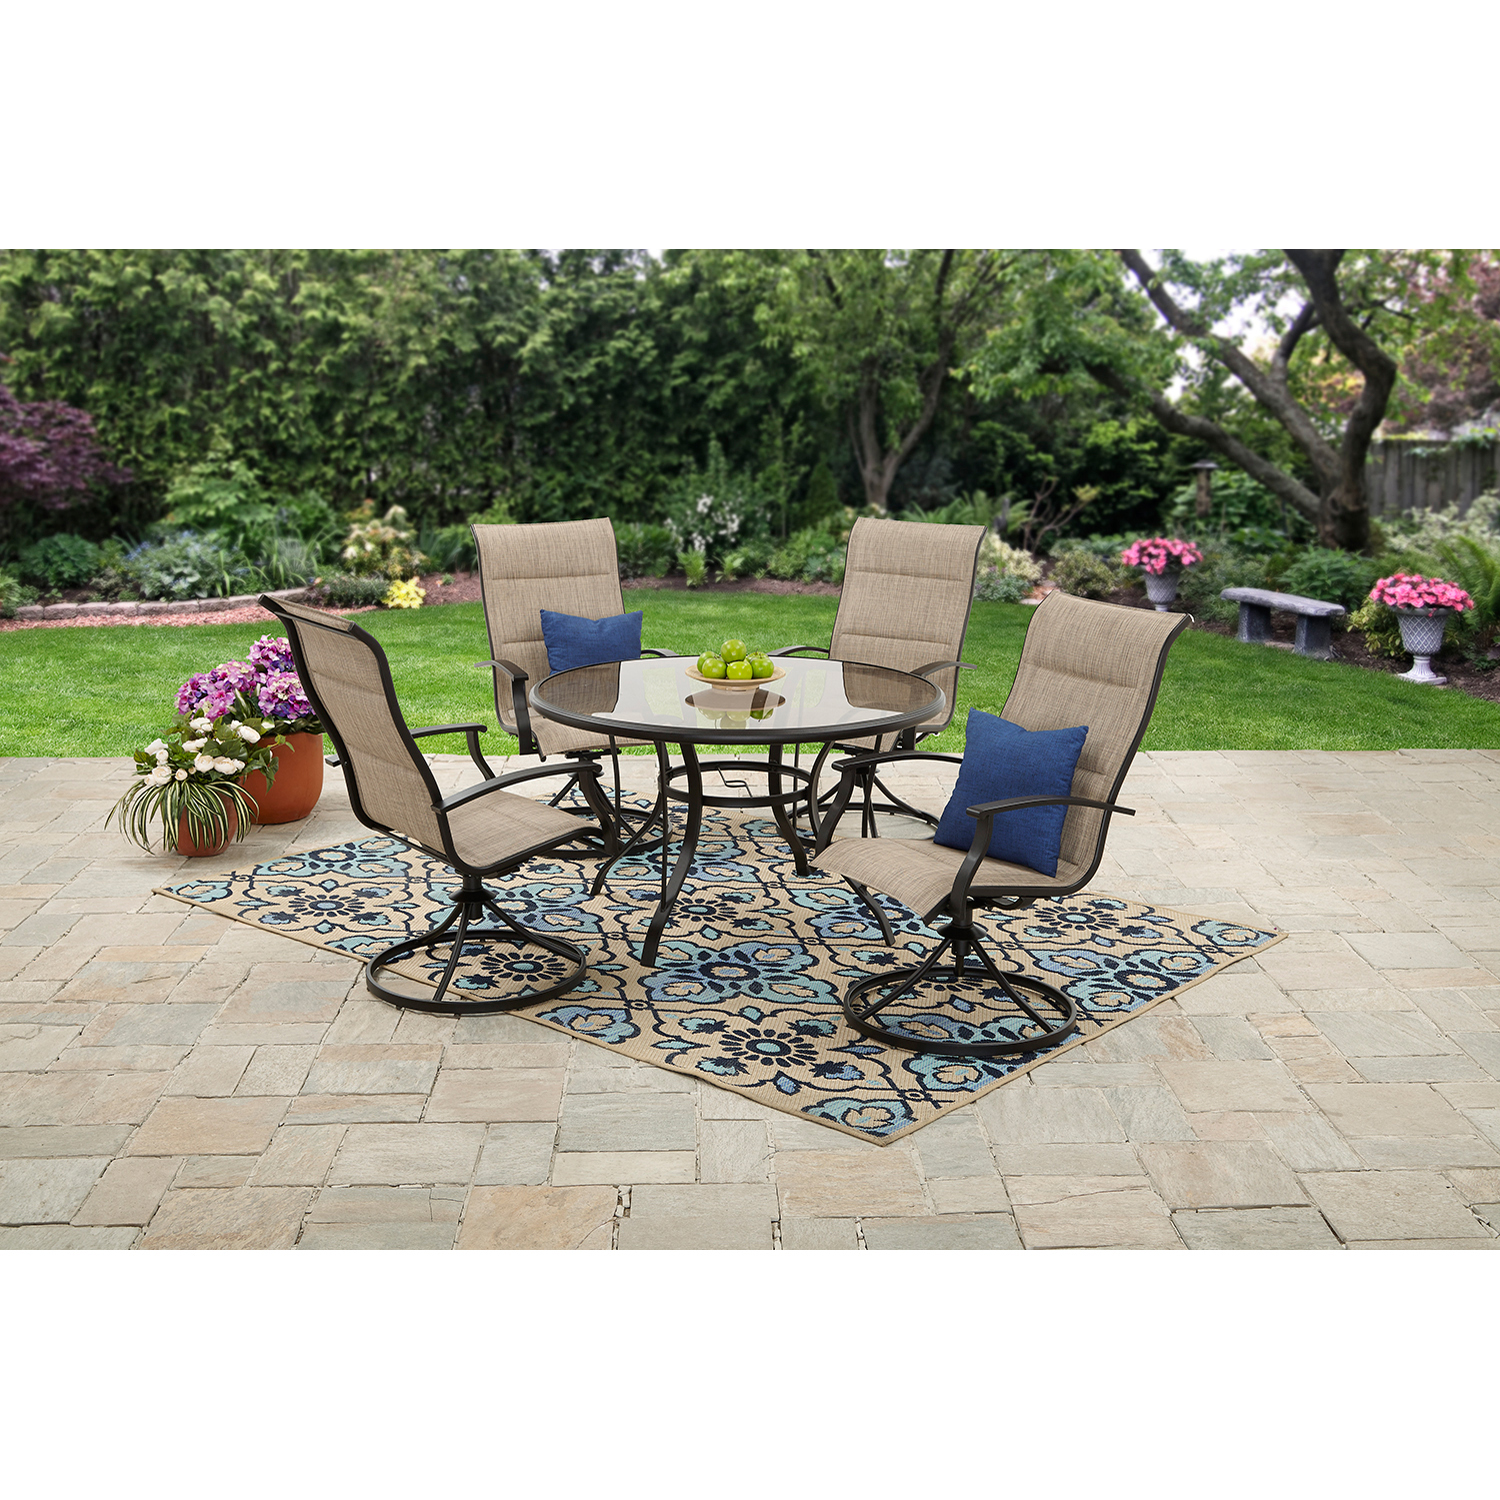 Mainstays Highland Knolls Padded Sling 5 Piece Patio Dining Set    Walmart.com